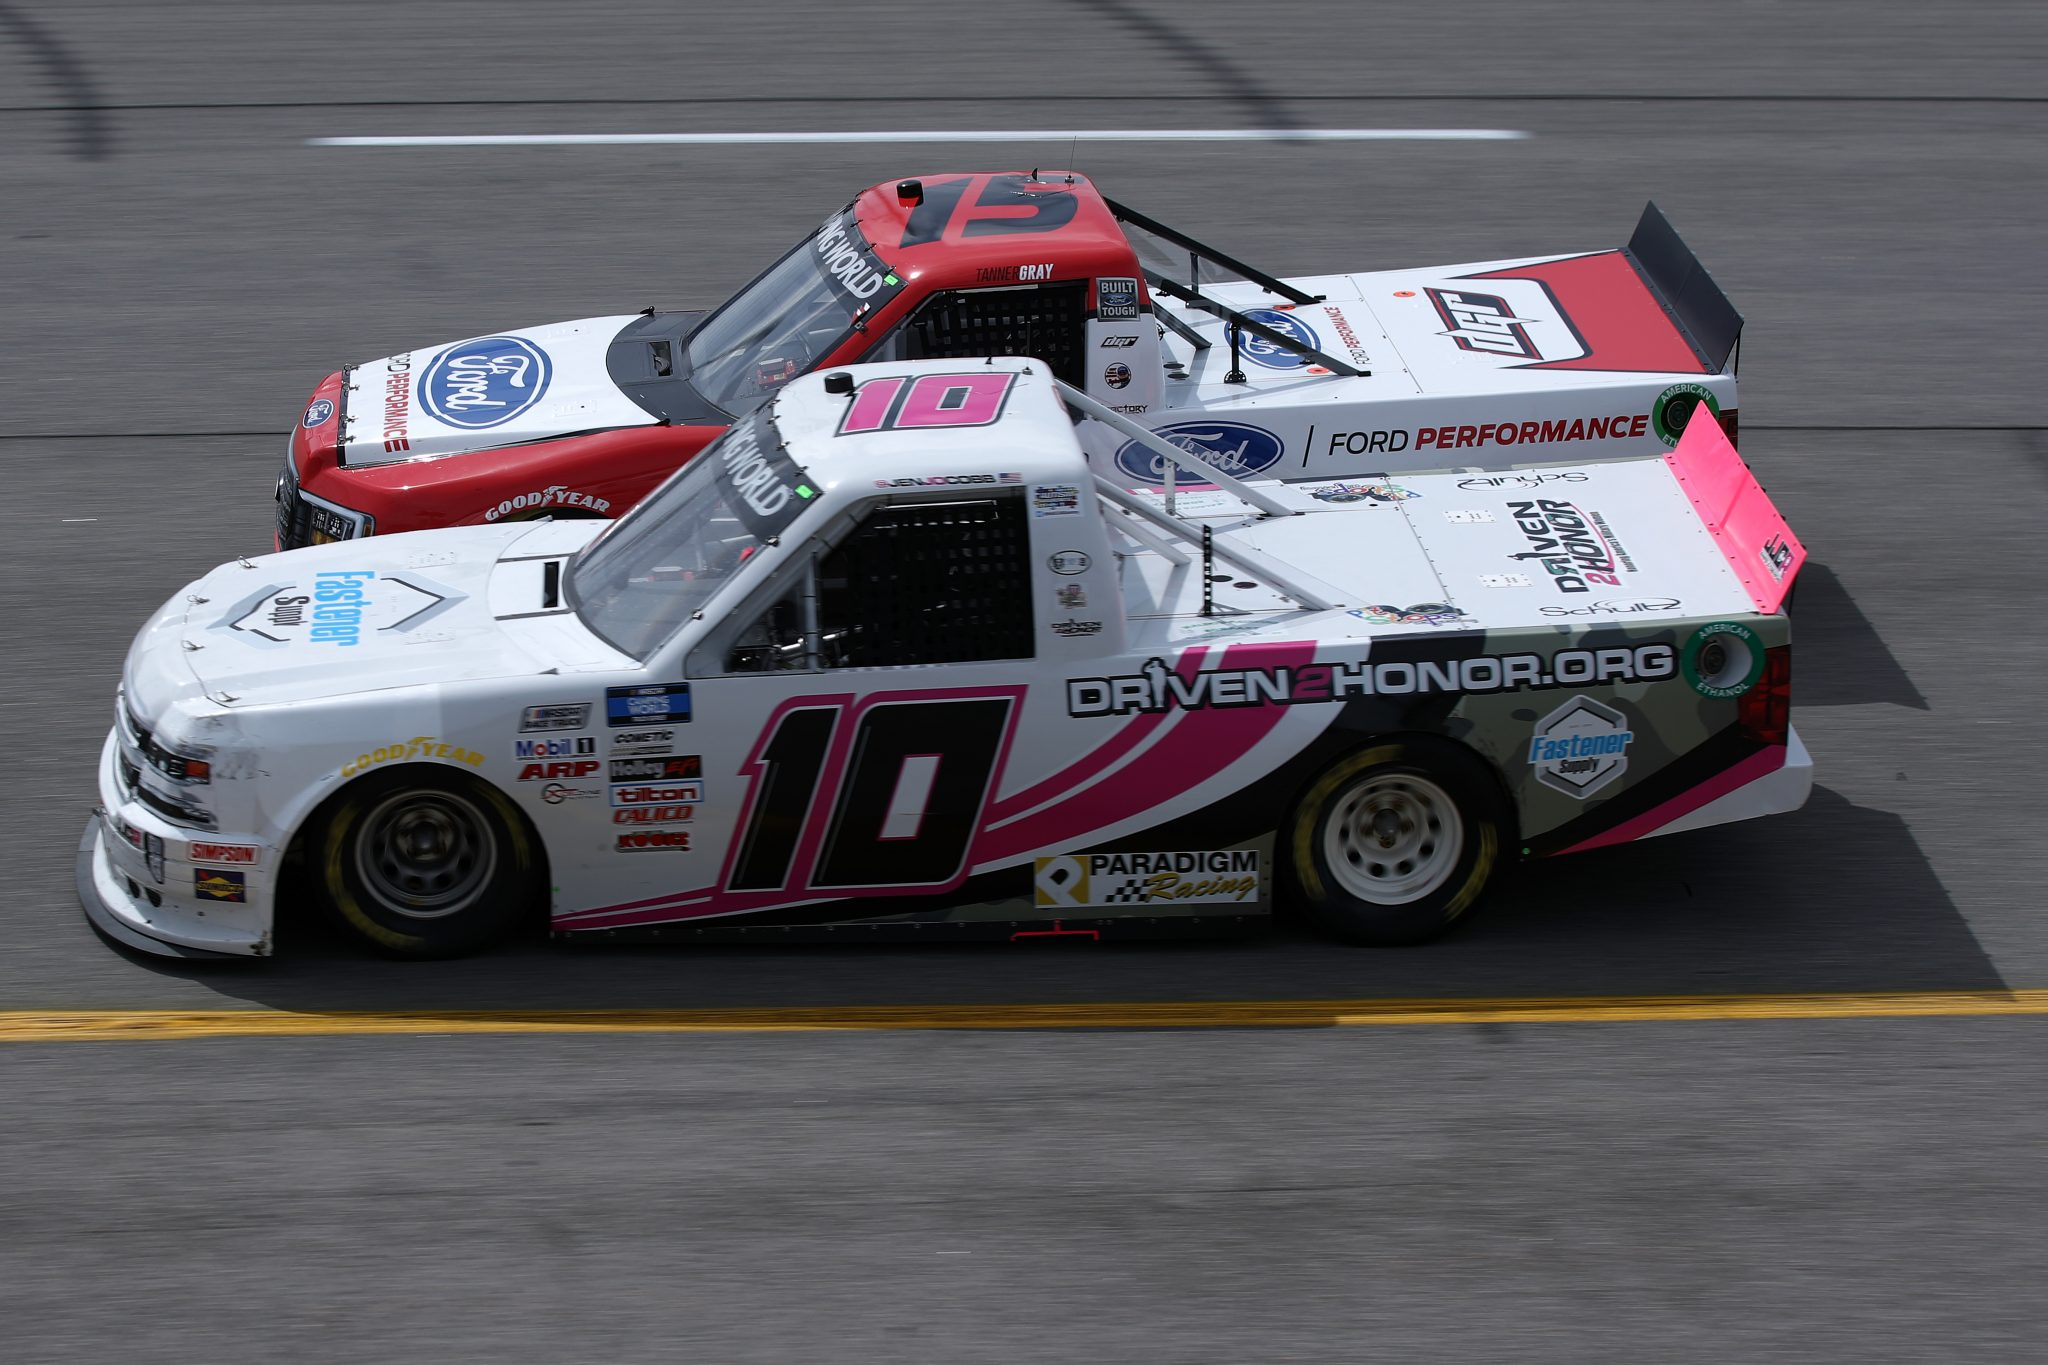 RICHMOND, VIRGINIA - APRIL 17: Jennifer Jo Cobb, driver of the #10 Fastener Supply Company Chevrolet, and Tanner Gray, driver of the #15 Ford Performance Ford, race during the NASCAR Camping World Truck Series ToyotaCare 250 at Richmond Raceway on April 17, 2021 in Richmond, Virginia. (Photo by Sean Gardner/Getty Images)   Getty Images